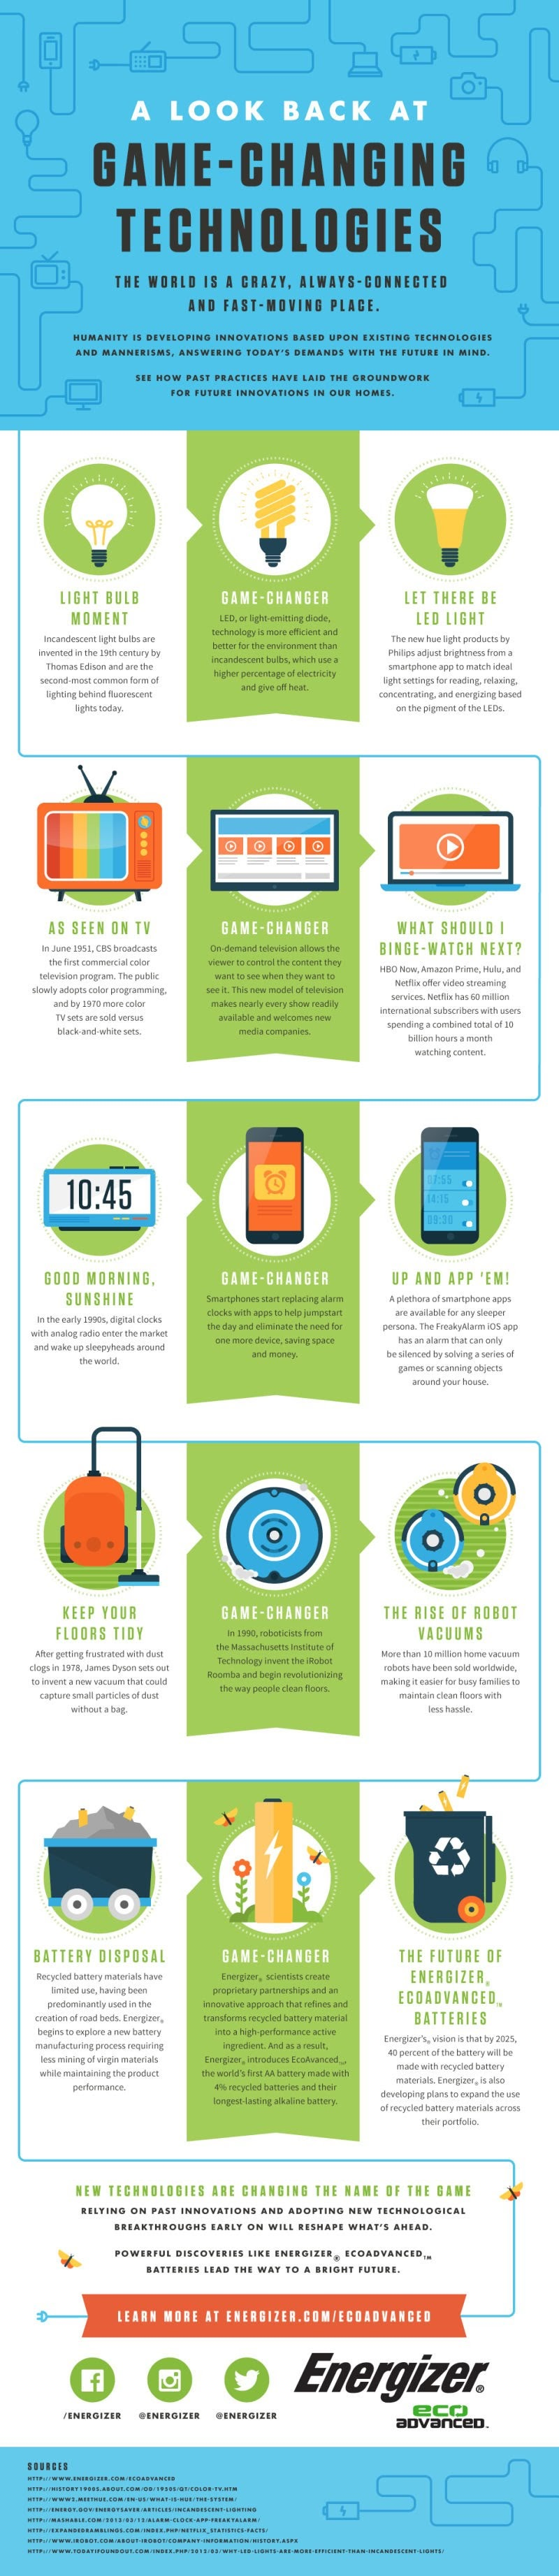 A Look At Game-Changing Technologies #Infographic